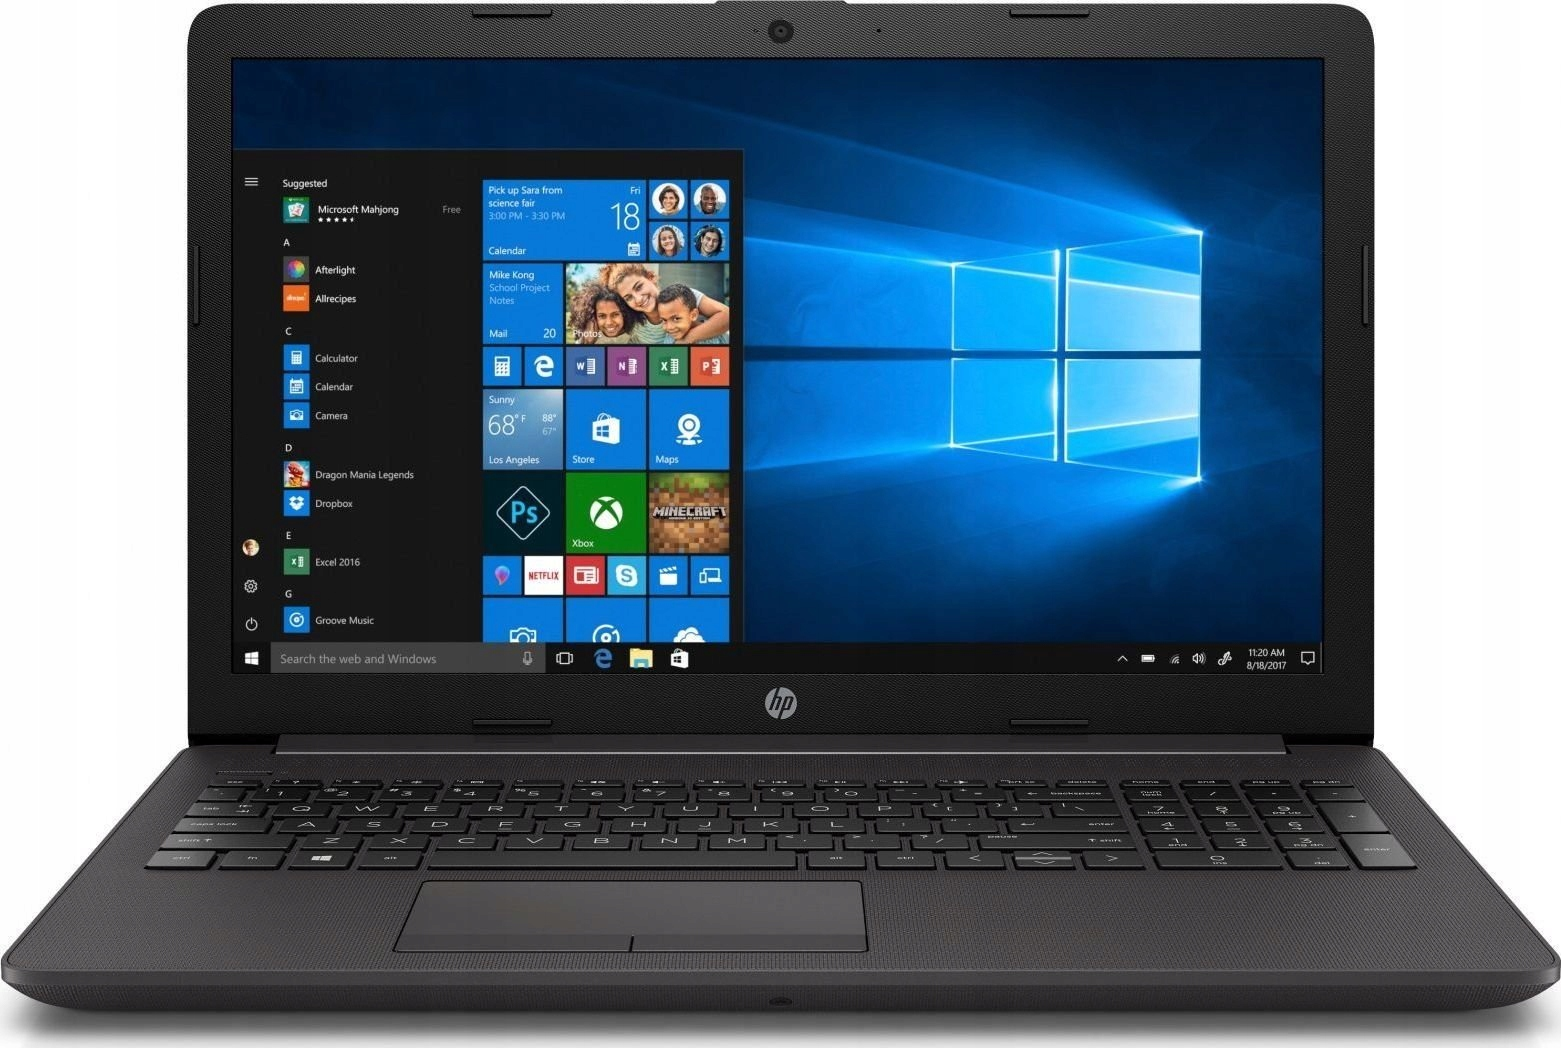 Komputer Laptop Hp Ryzen 3500U Ssd 256GB 8GB DDR4